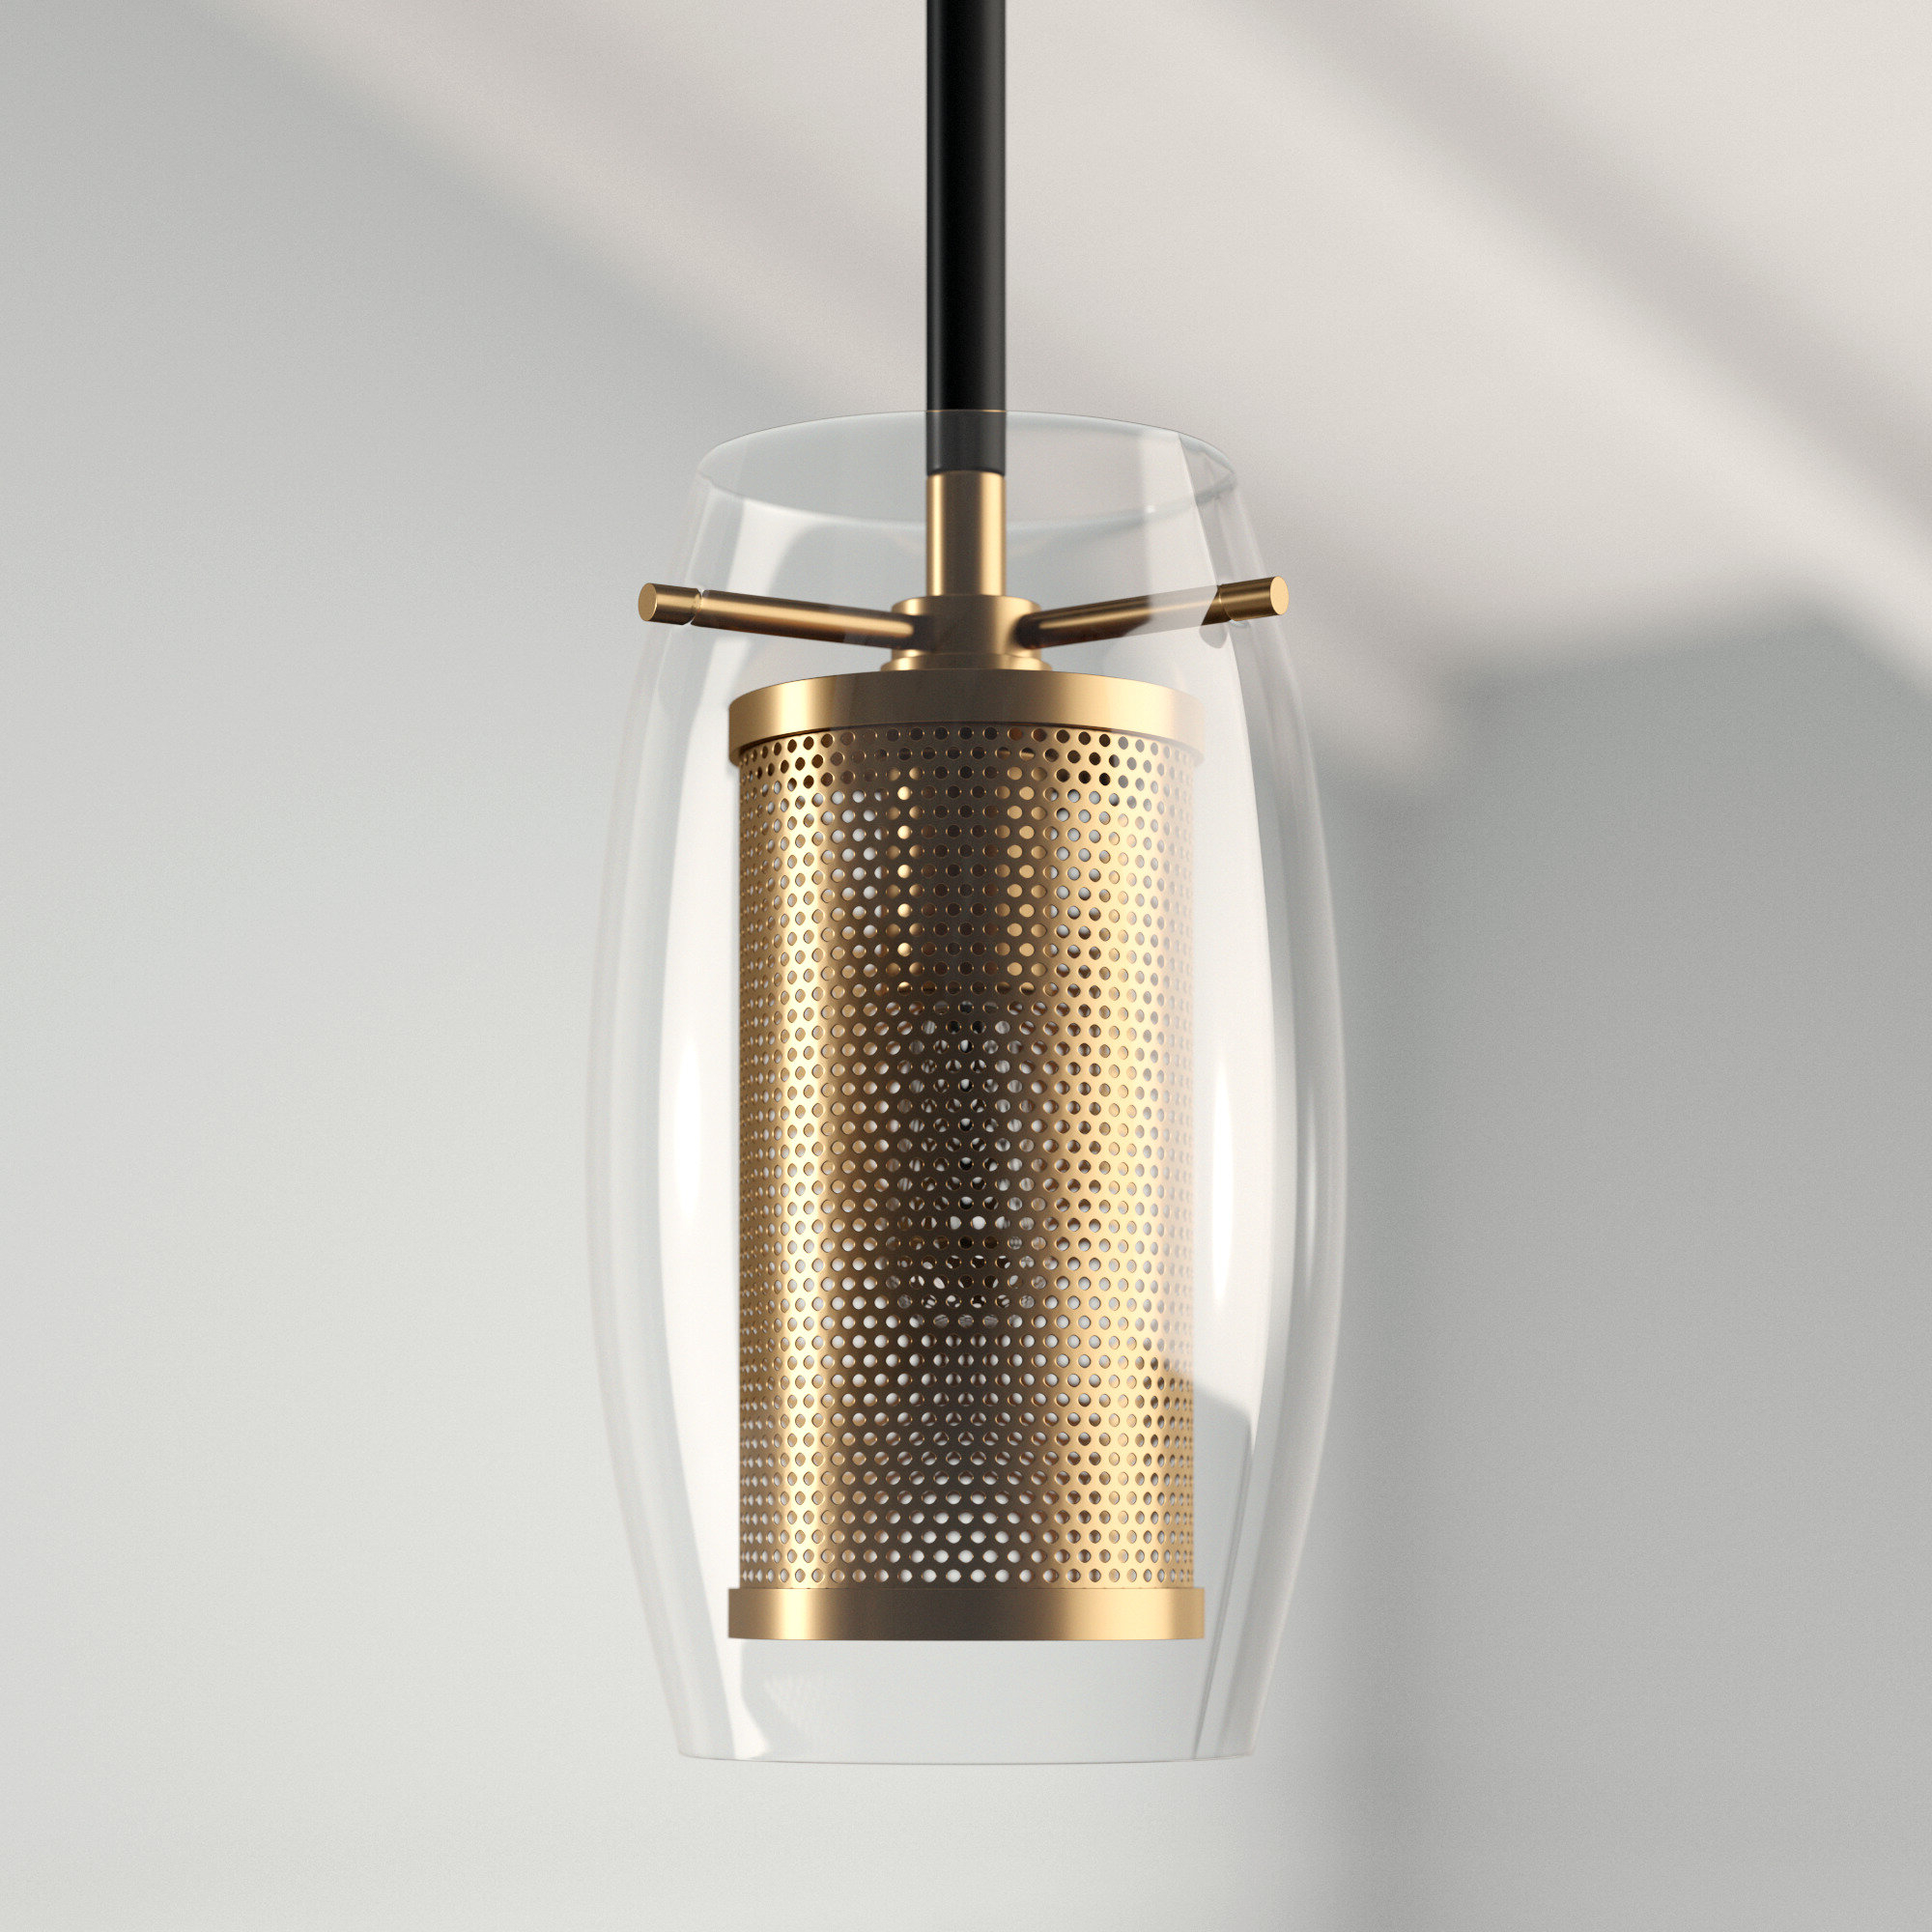 Depp 1 Light Single Cylinder Pendant Regarding Well Known Fennia 1 Light Single Cylinder Pendants (Gallery 10 of 20)